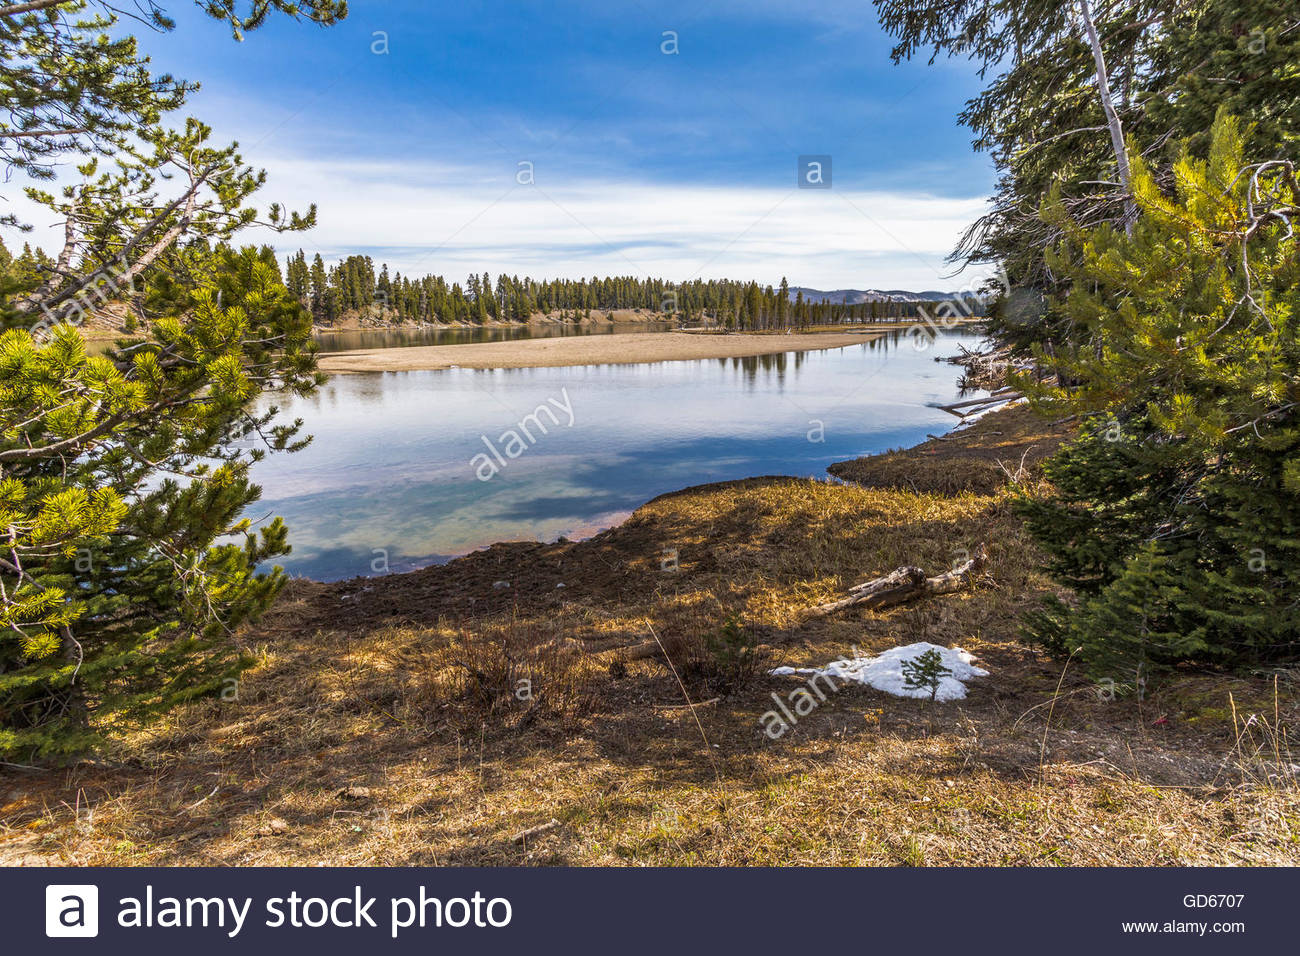 A view from the area of the Fishing Bridge spanning the Yellowstone river in Yellowstone National Park, USA... - Stock Image